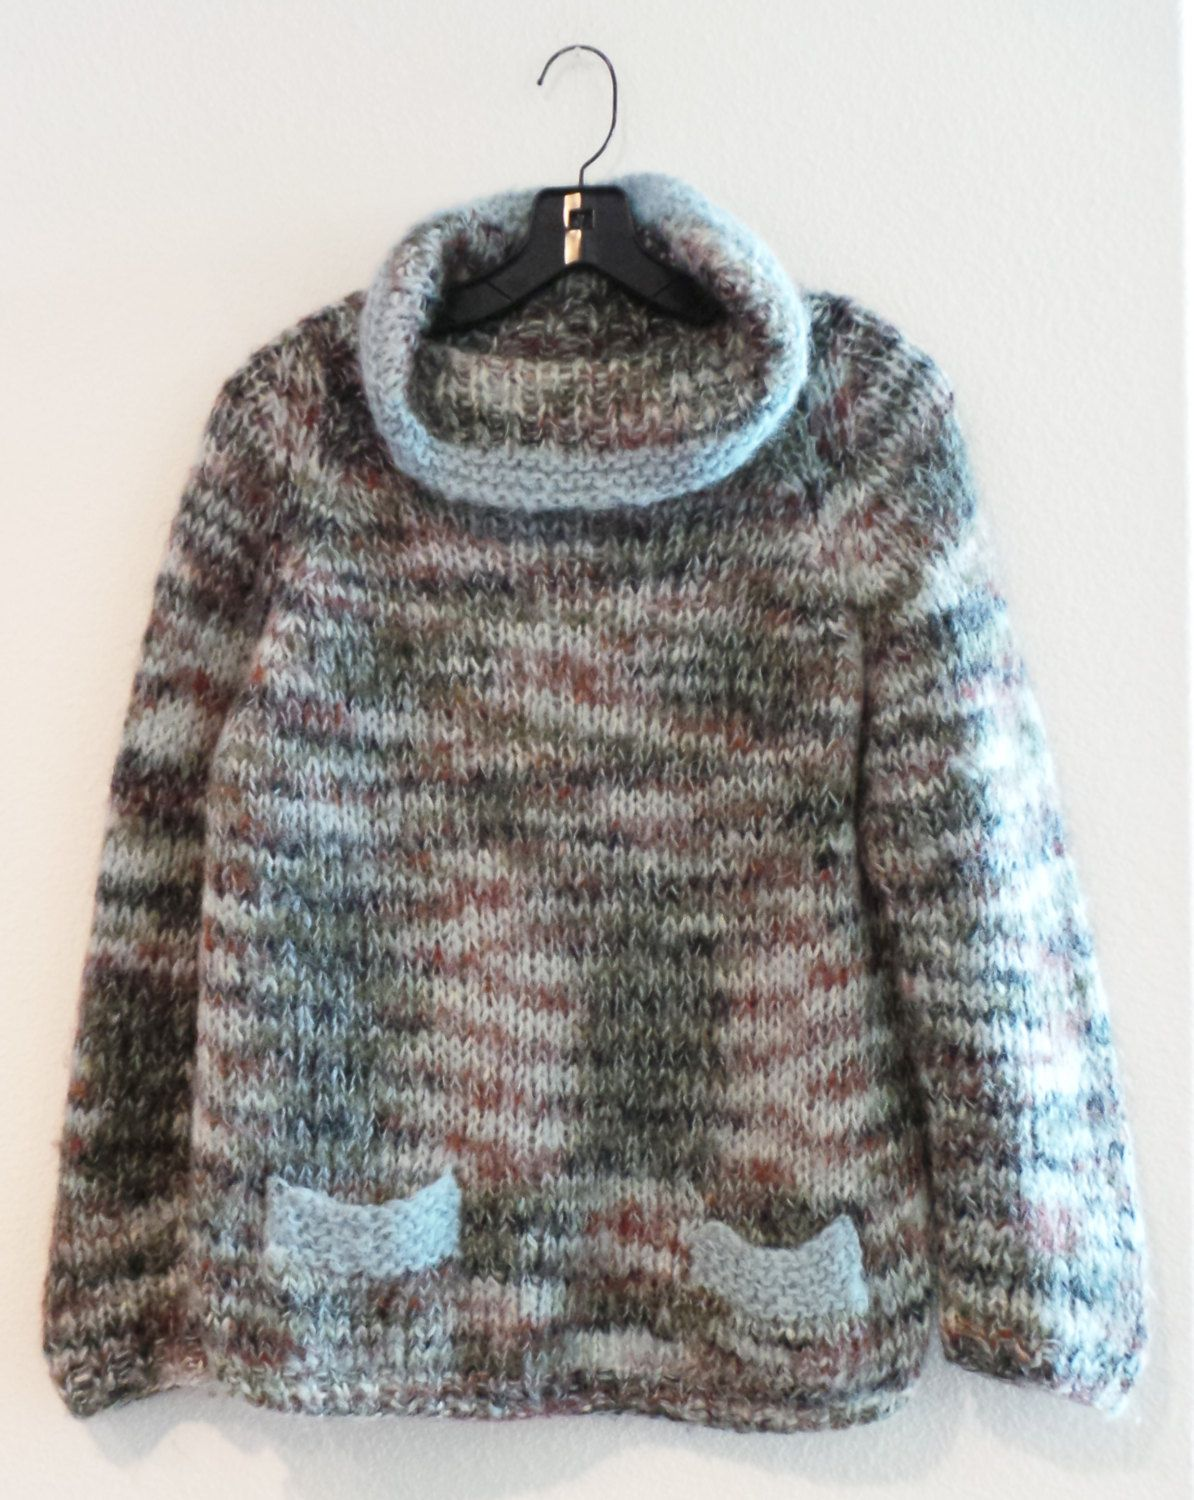 67e0ee4c7dbb0 Warm Vintage 50s COLEBROOK Hand Knit Italy Wool Mohair Sweater Pullover